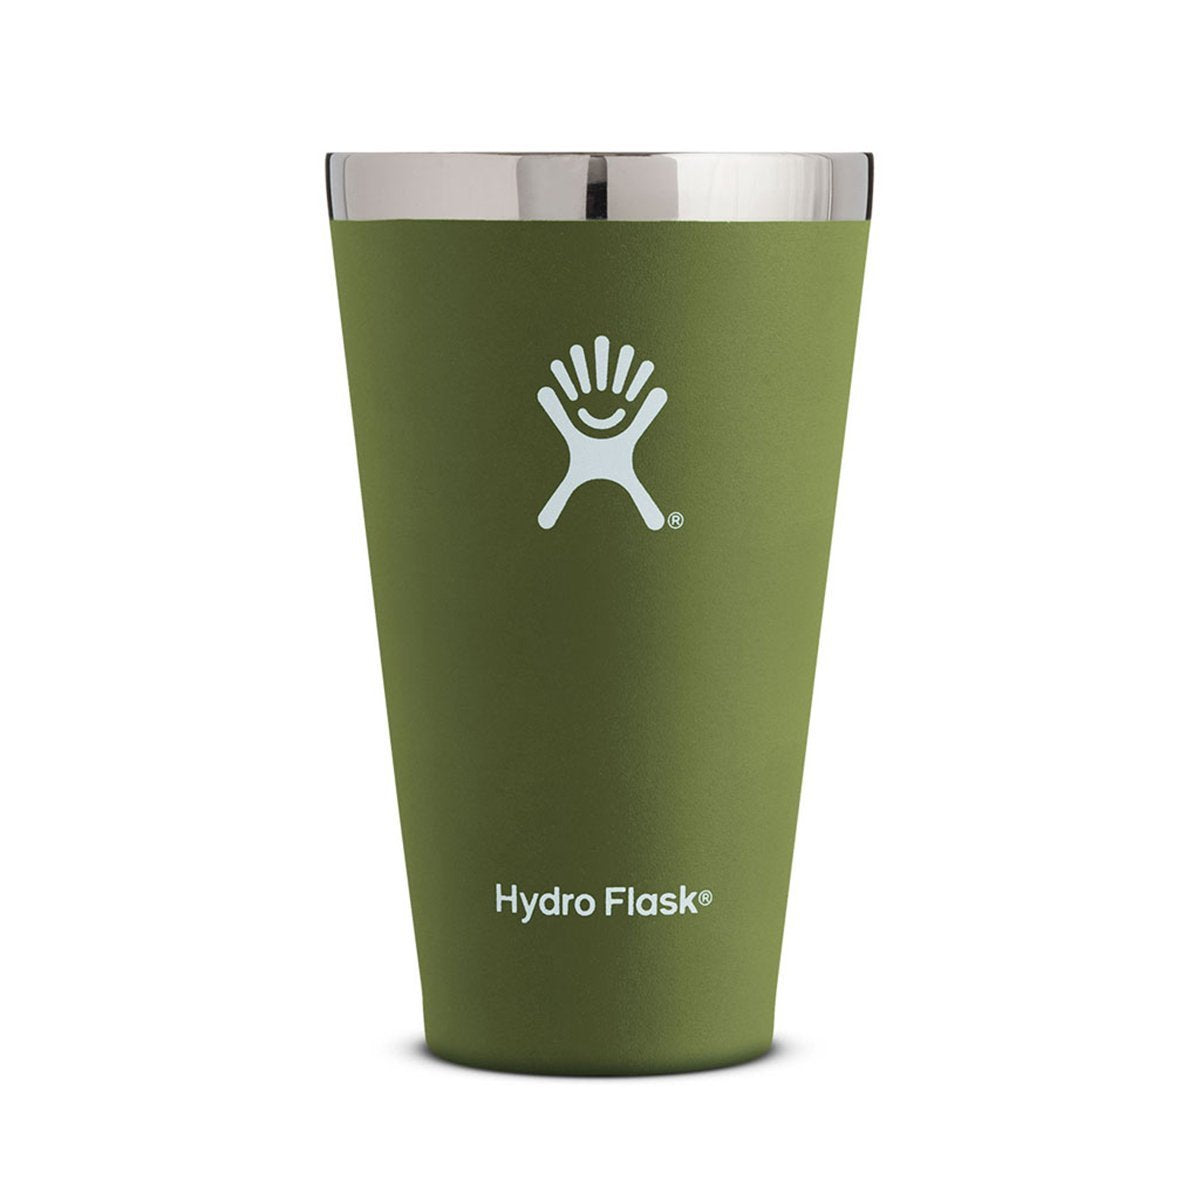 Hydro Flask | 16 oz Tumbler | Stainless Steel Pint Glass | Olive